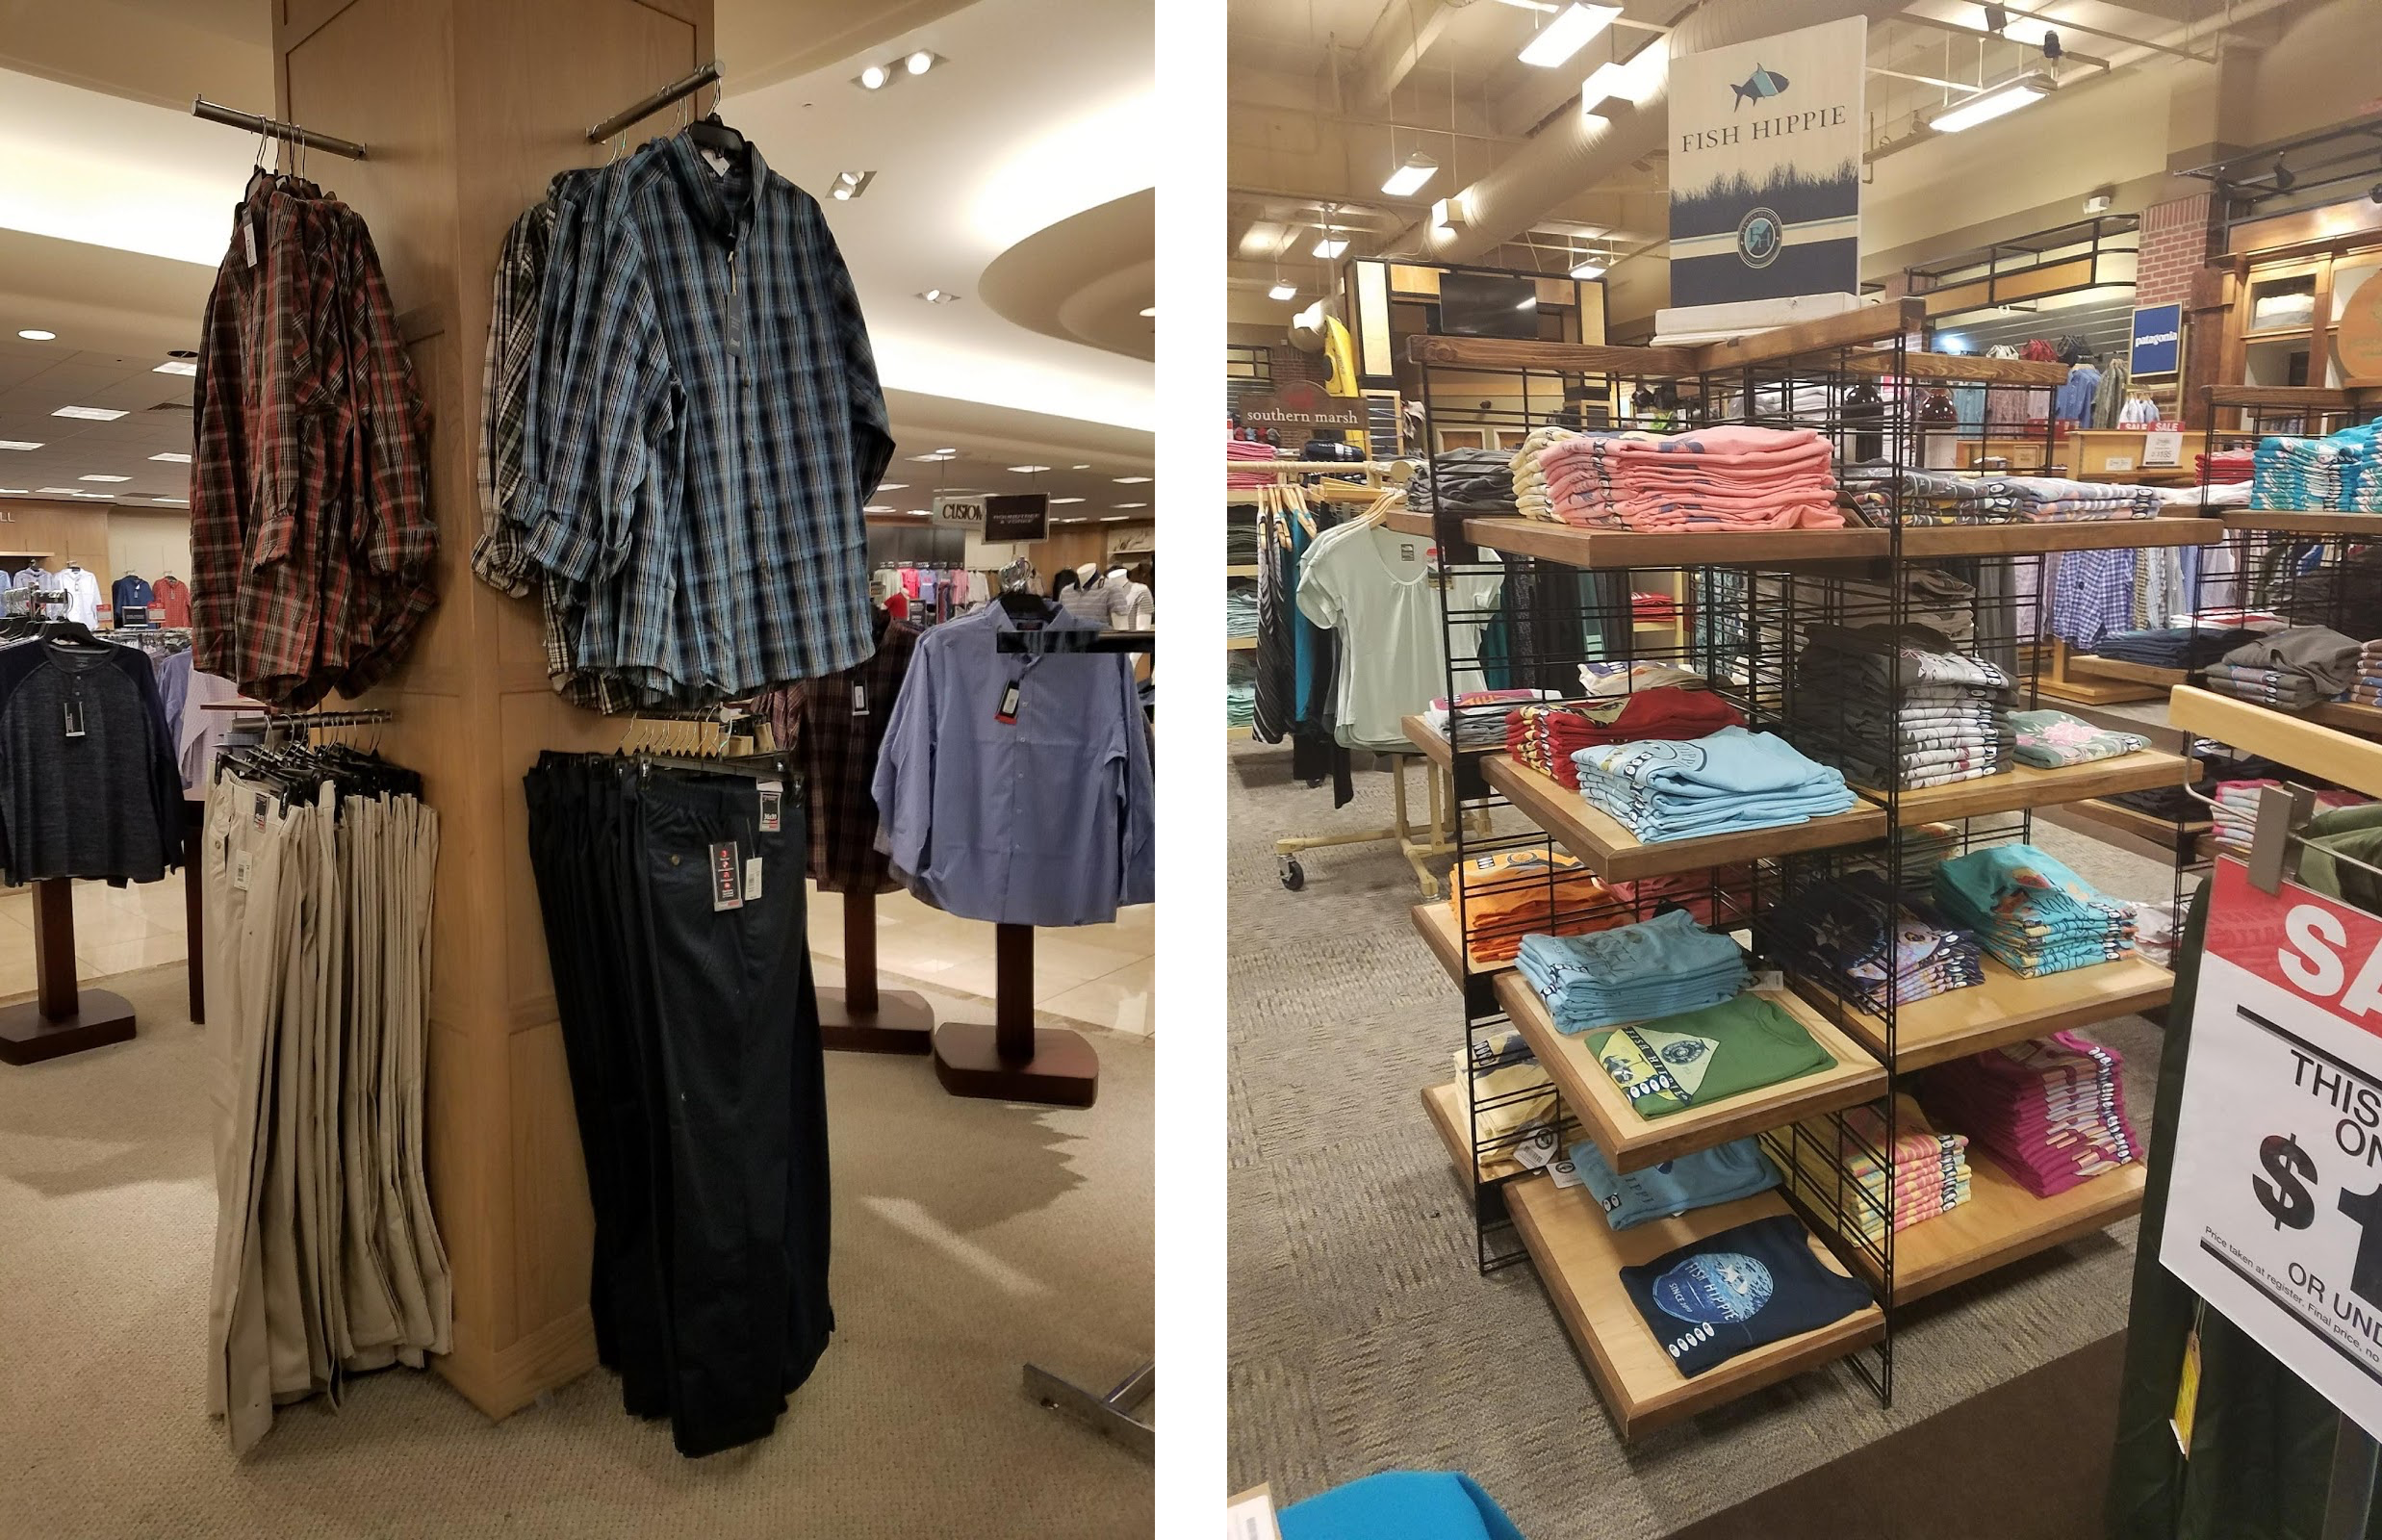 Reaching Problems - High to reach cloth racks & displays and tall to reach checkout tables are some main issues with respect to reachability in the store.